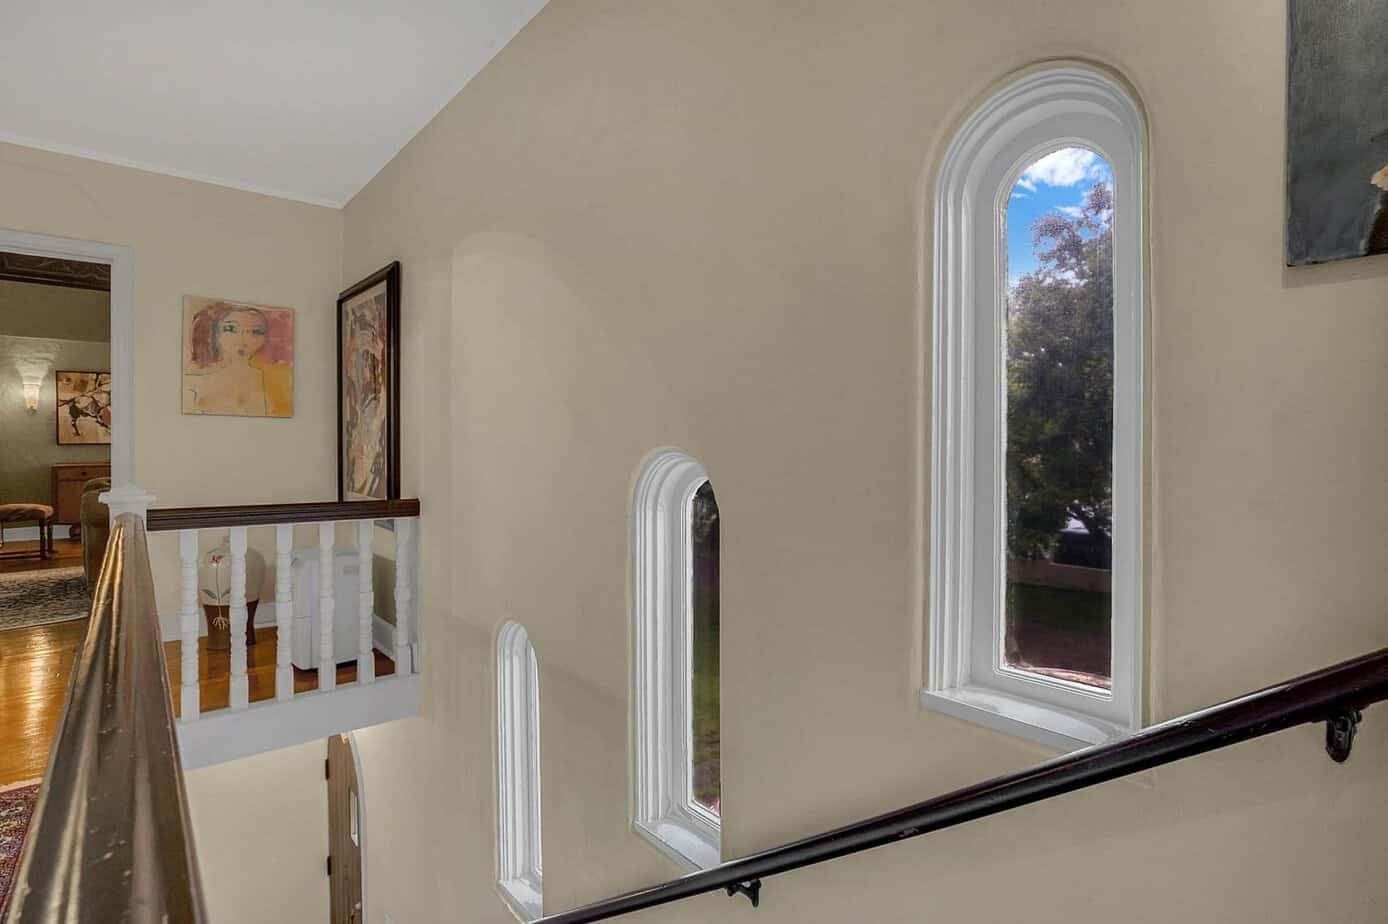 Picture of back staircase of 4024 W Bay to Bay Tampa FL 33629 with arched windows and artwork